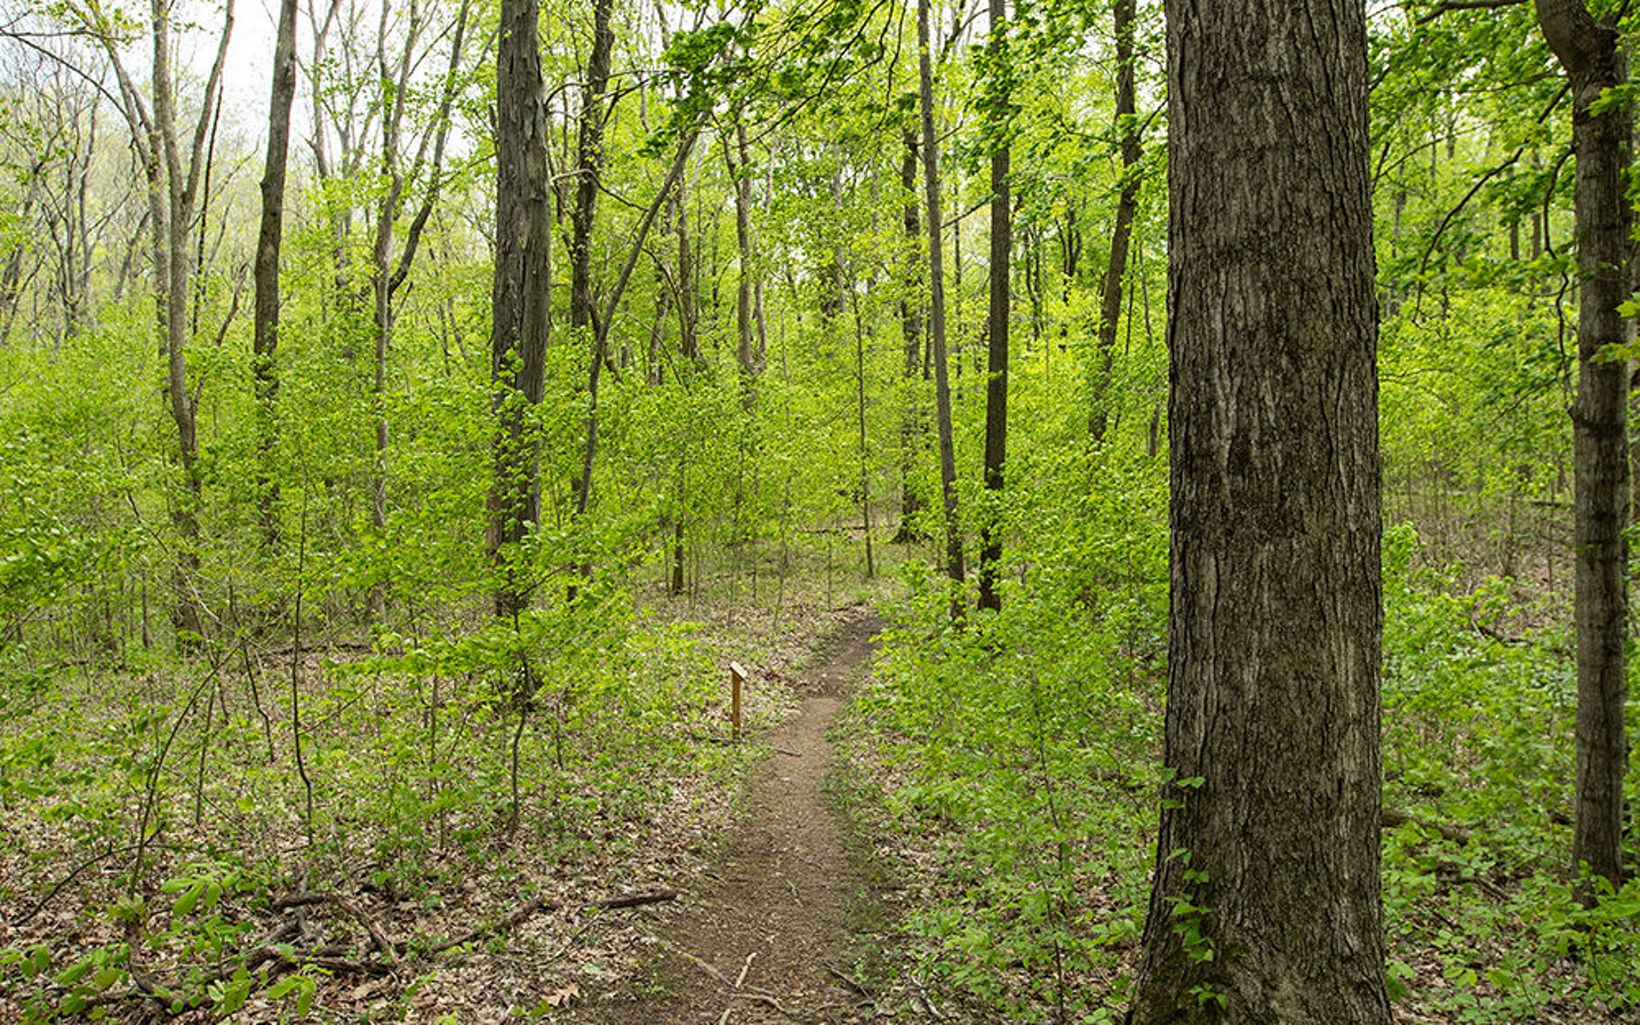 A hiking trail leads through the woods.